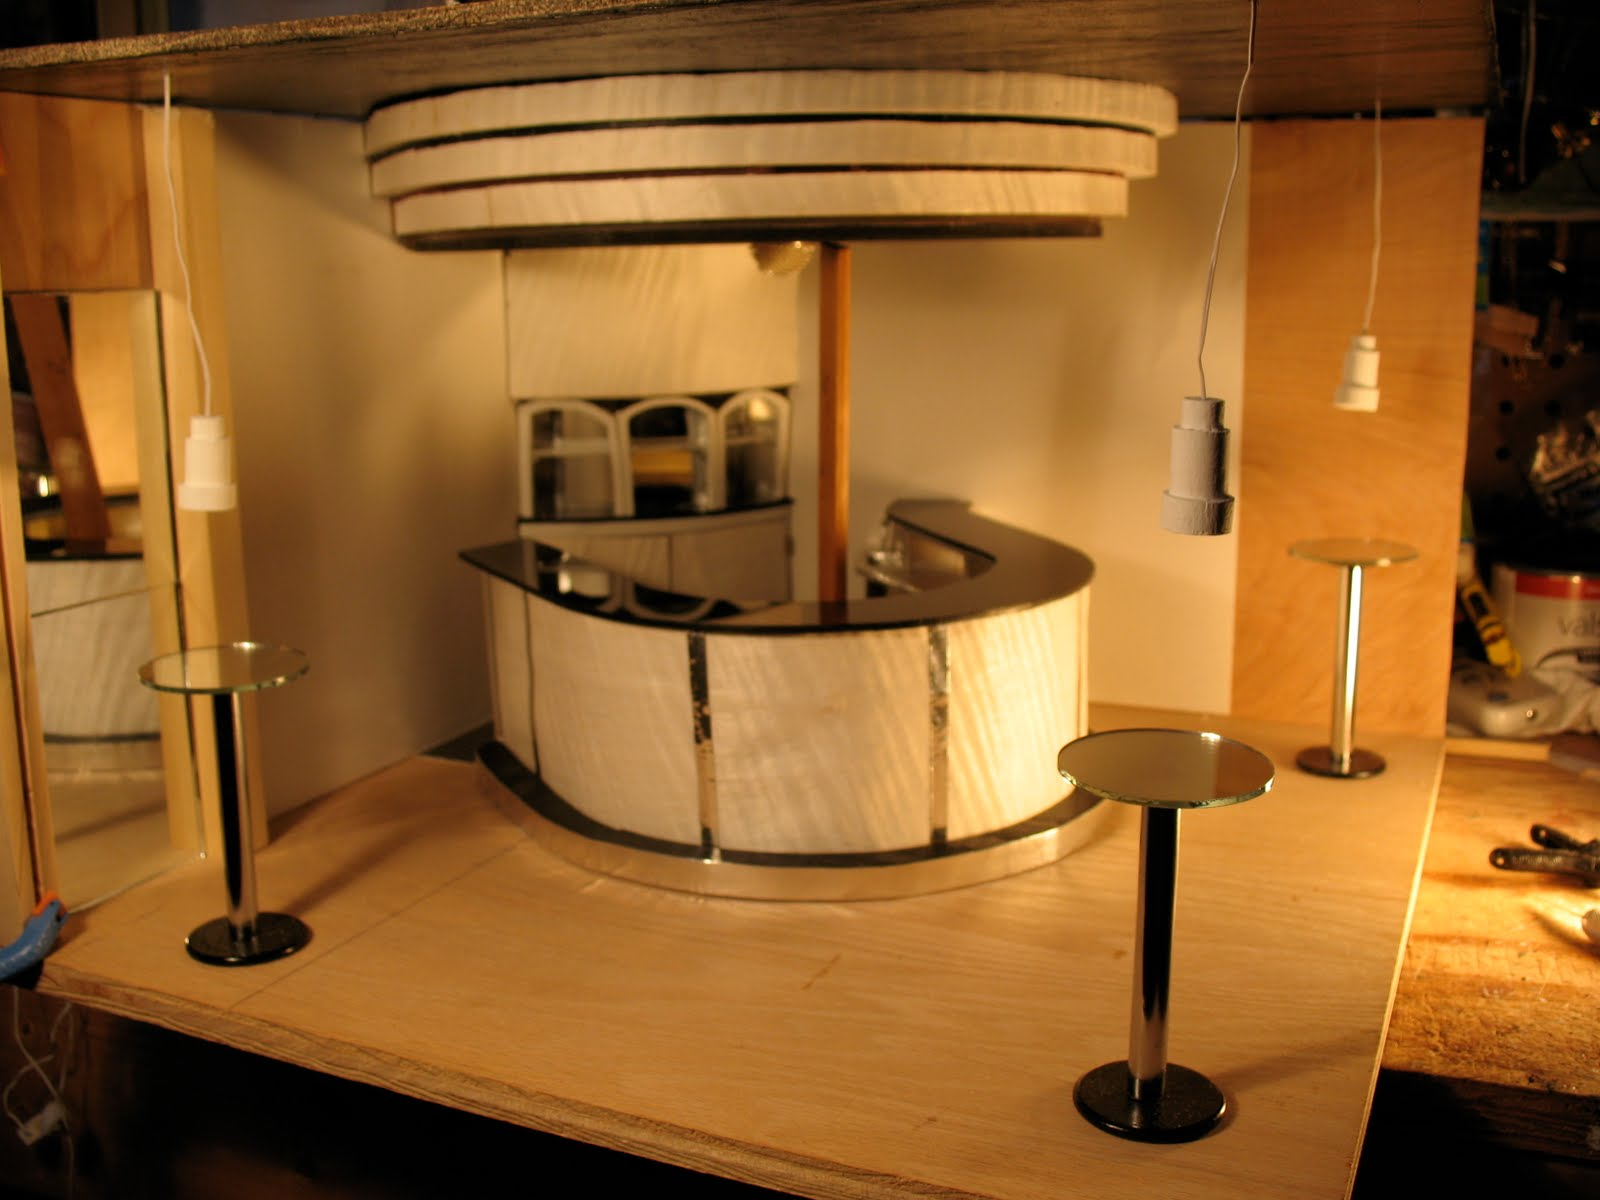 Minibydesign art deco bar update 4 - Deco bar design ...